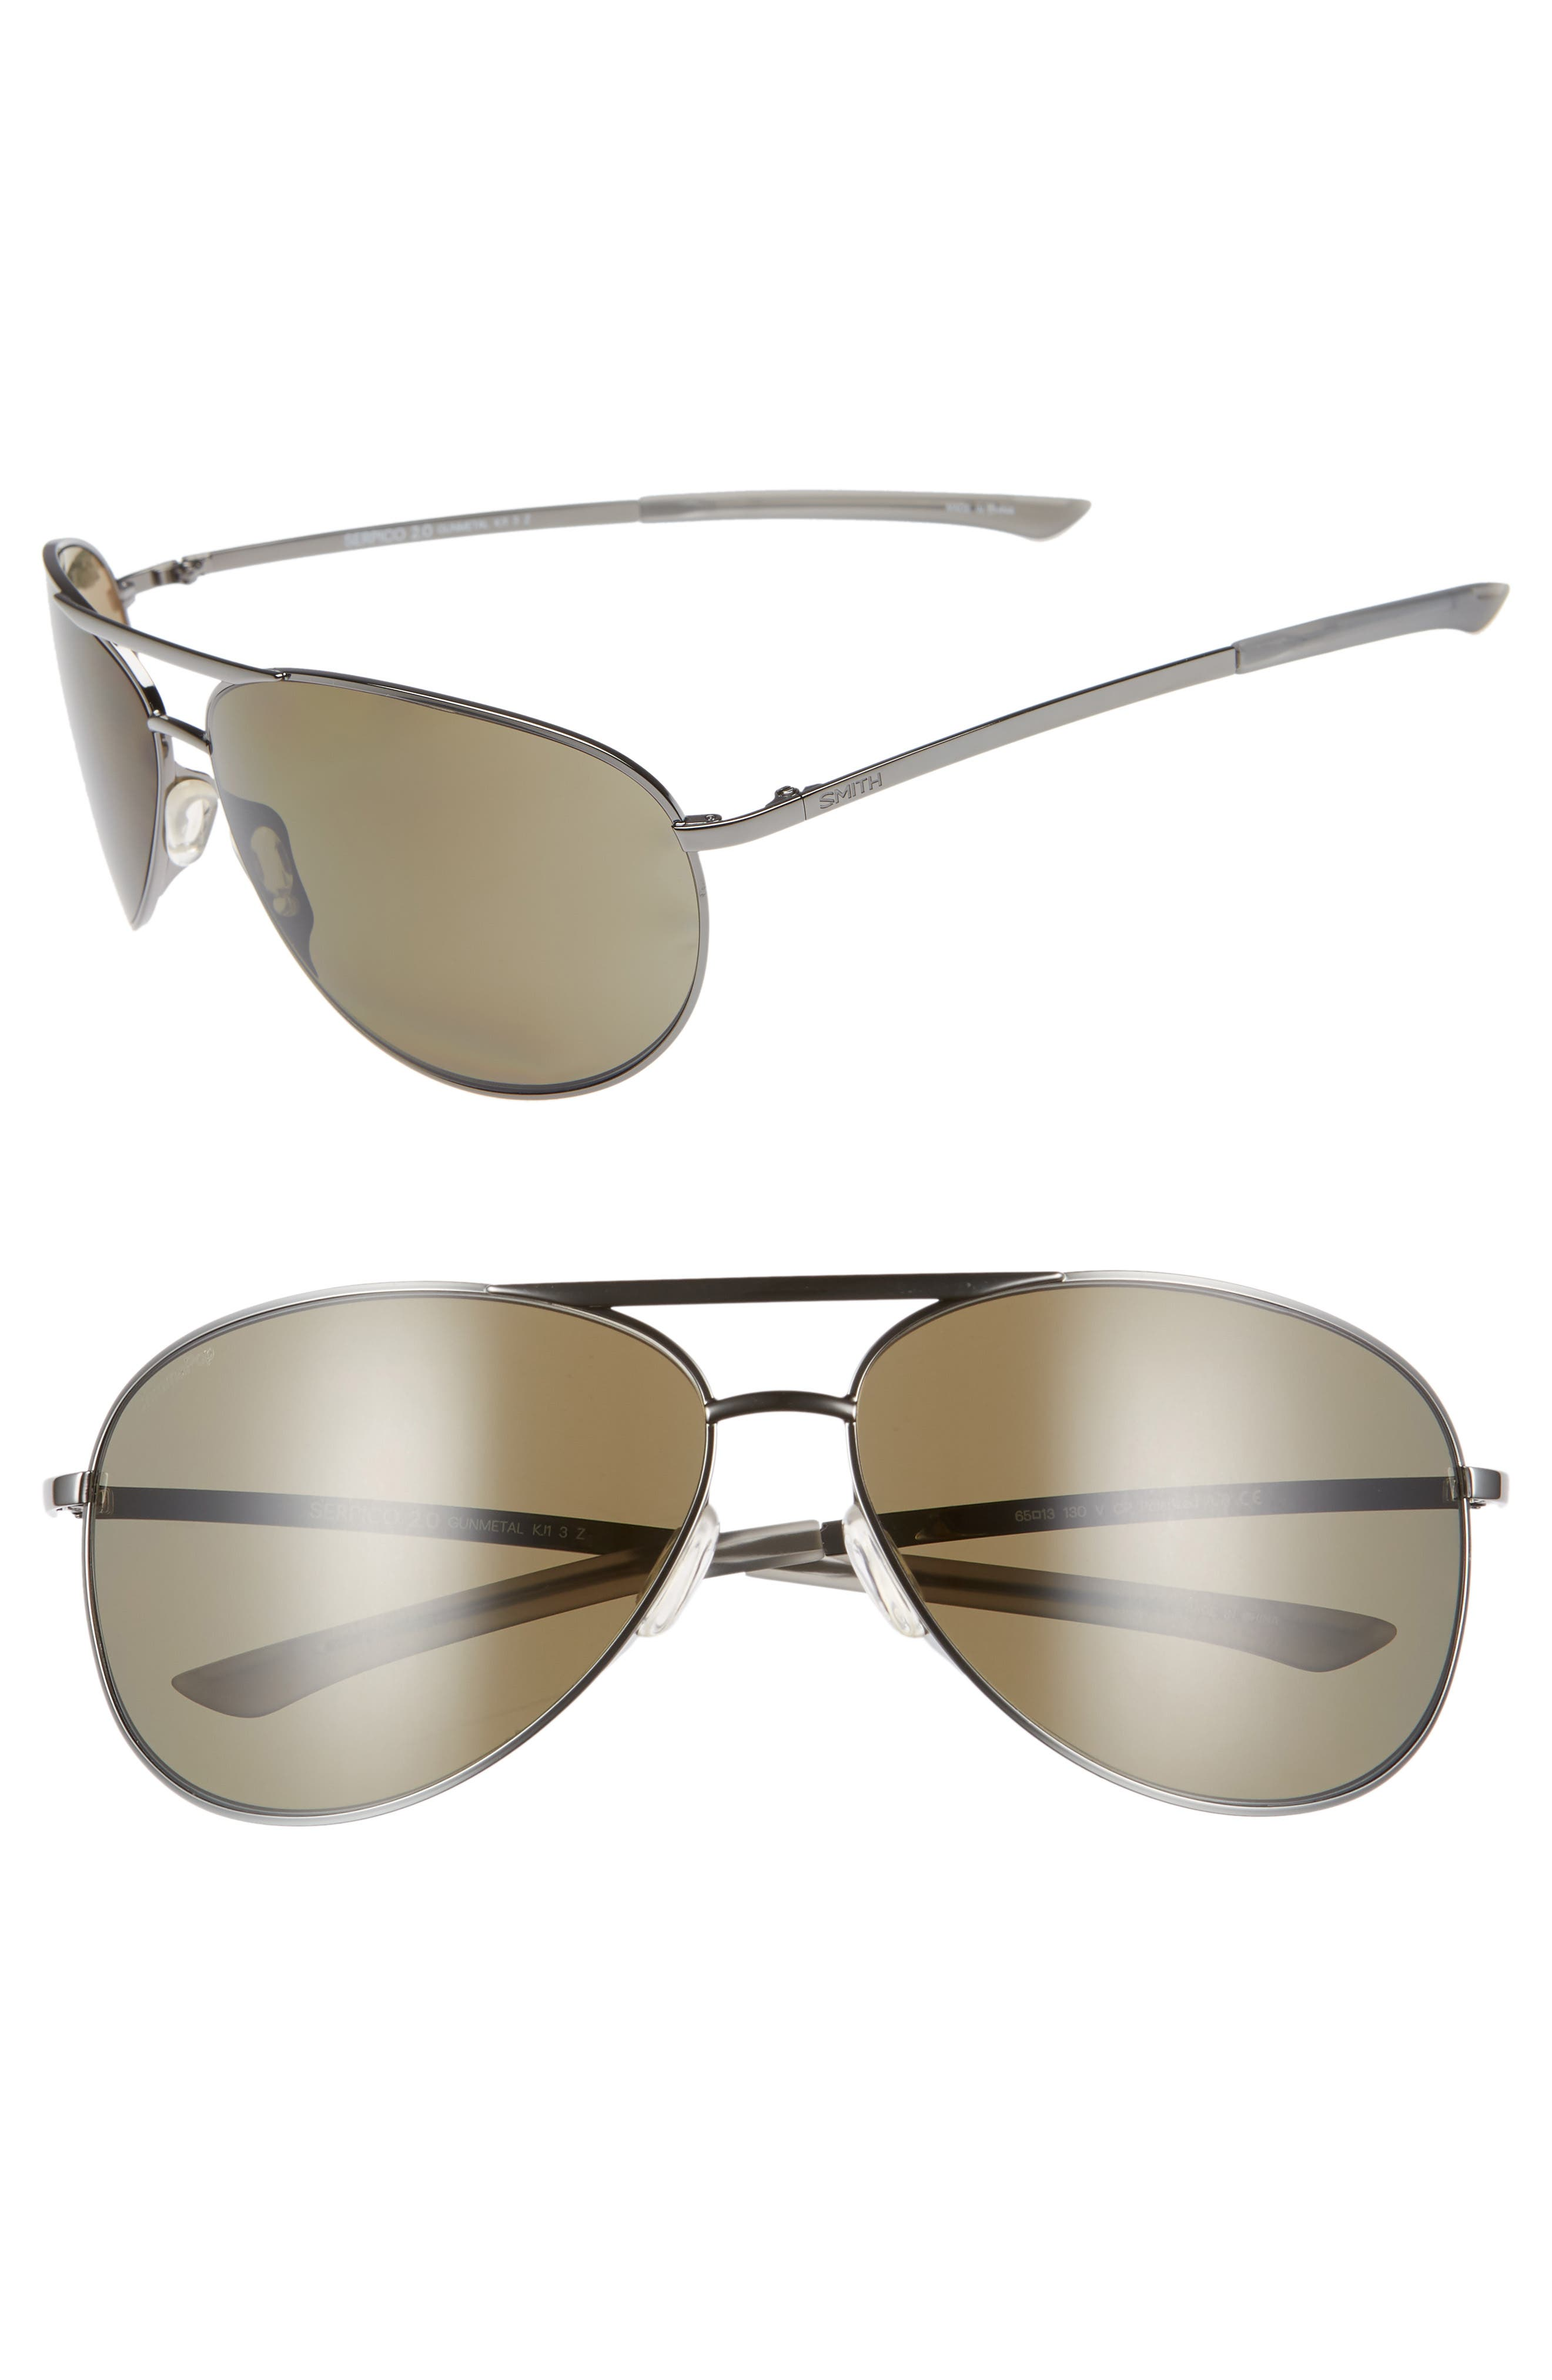 Serpico 2 65mm Mirrored ChromaPop<sup>™</sup> Polarized Aviator Sunglasses, Main, color, GUNMETAL